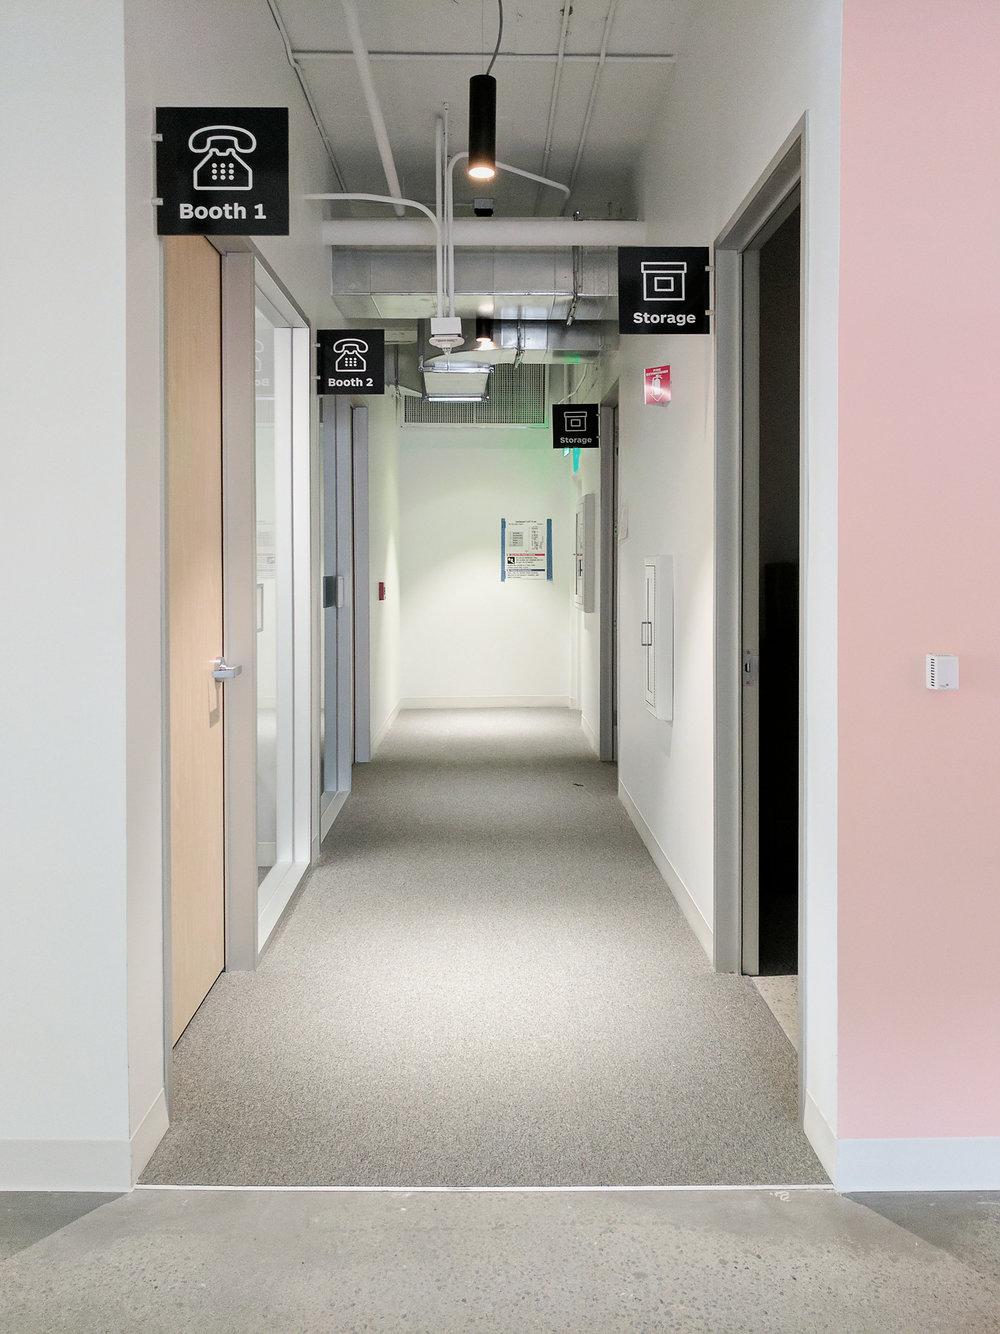 Hallways with Storage Rooms and Phone Booths San Francisco Office